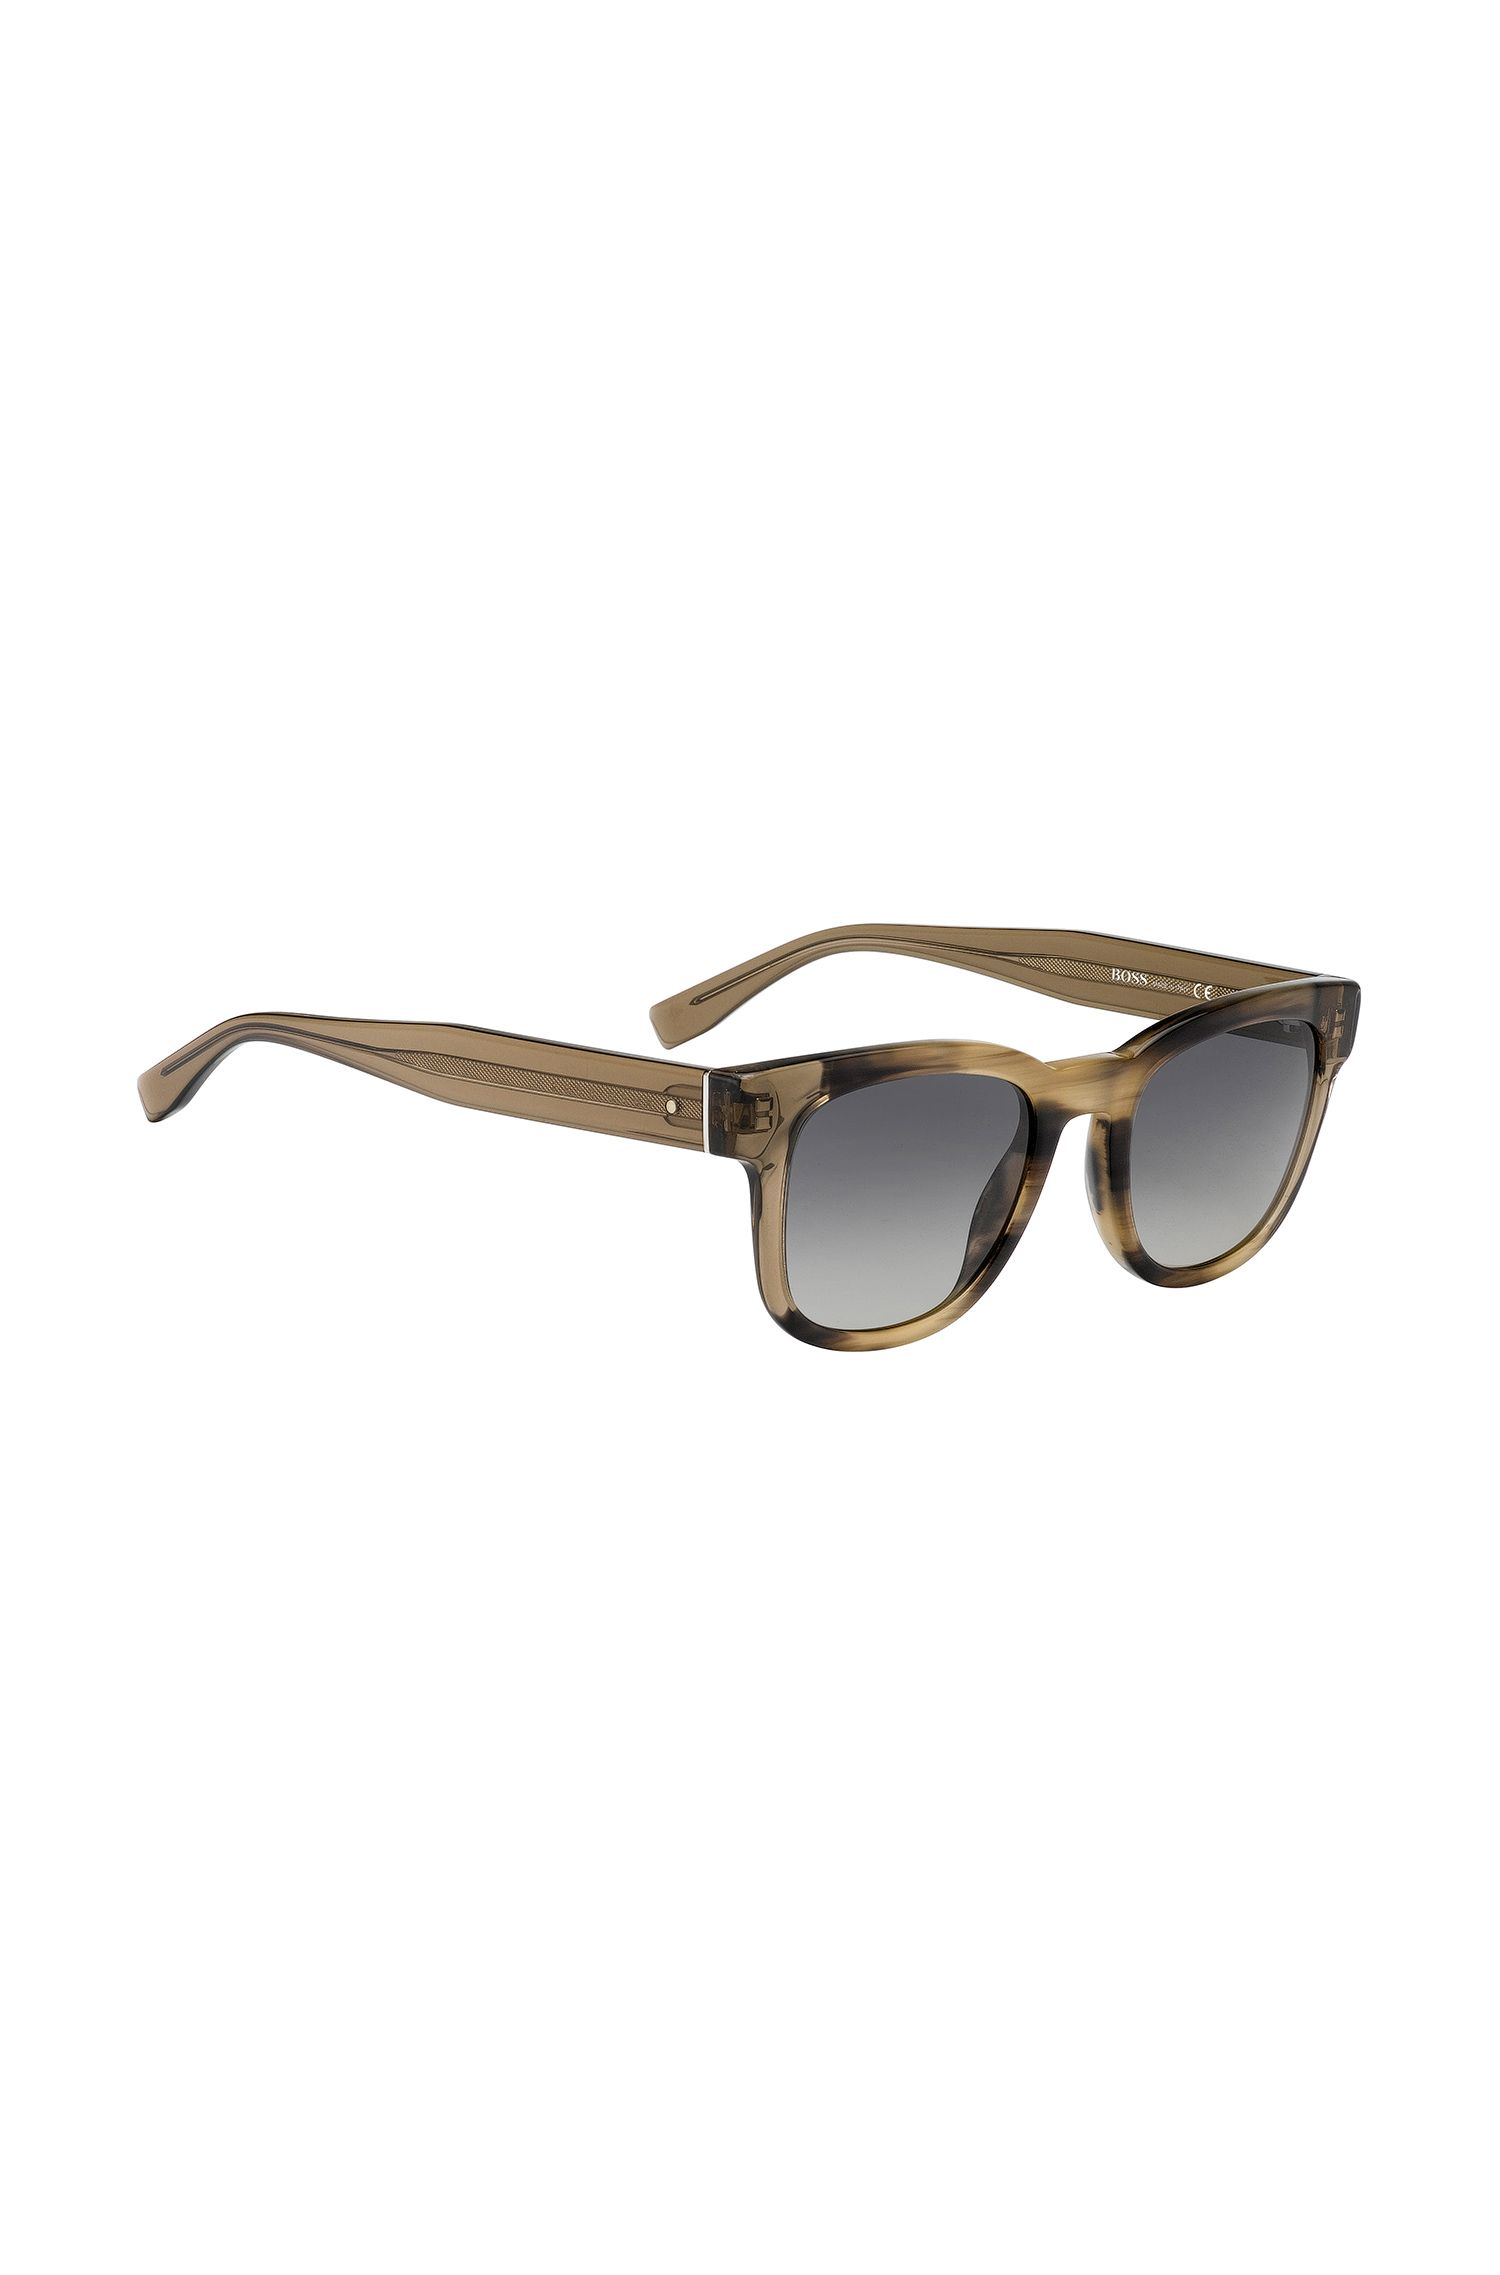 Sunglasses: 'BOSS 0736/S'